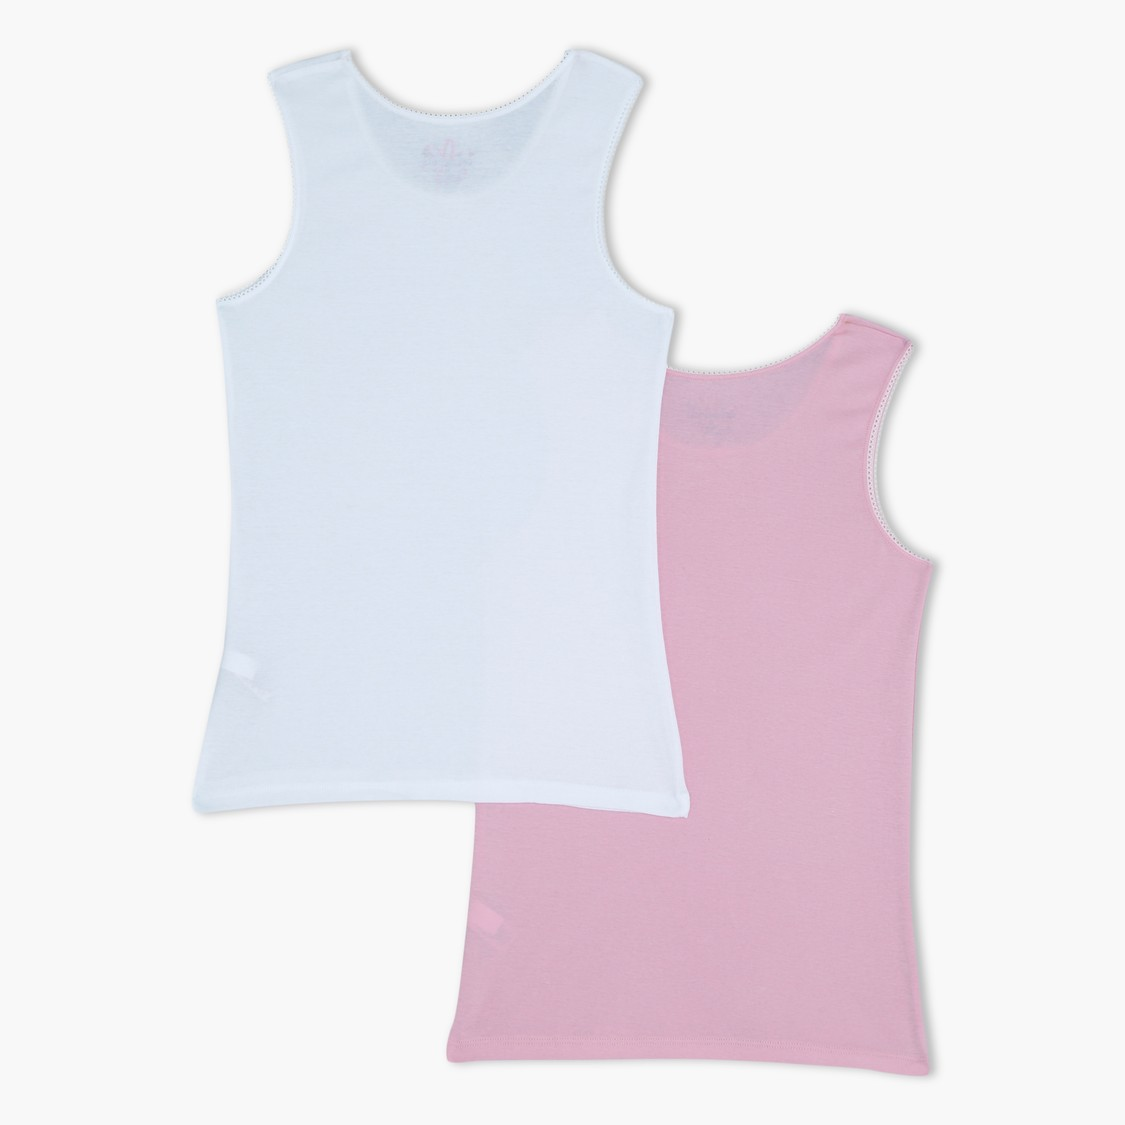 Sleeveless Vest with Bow Applique - Set of 2